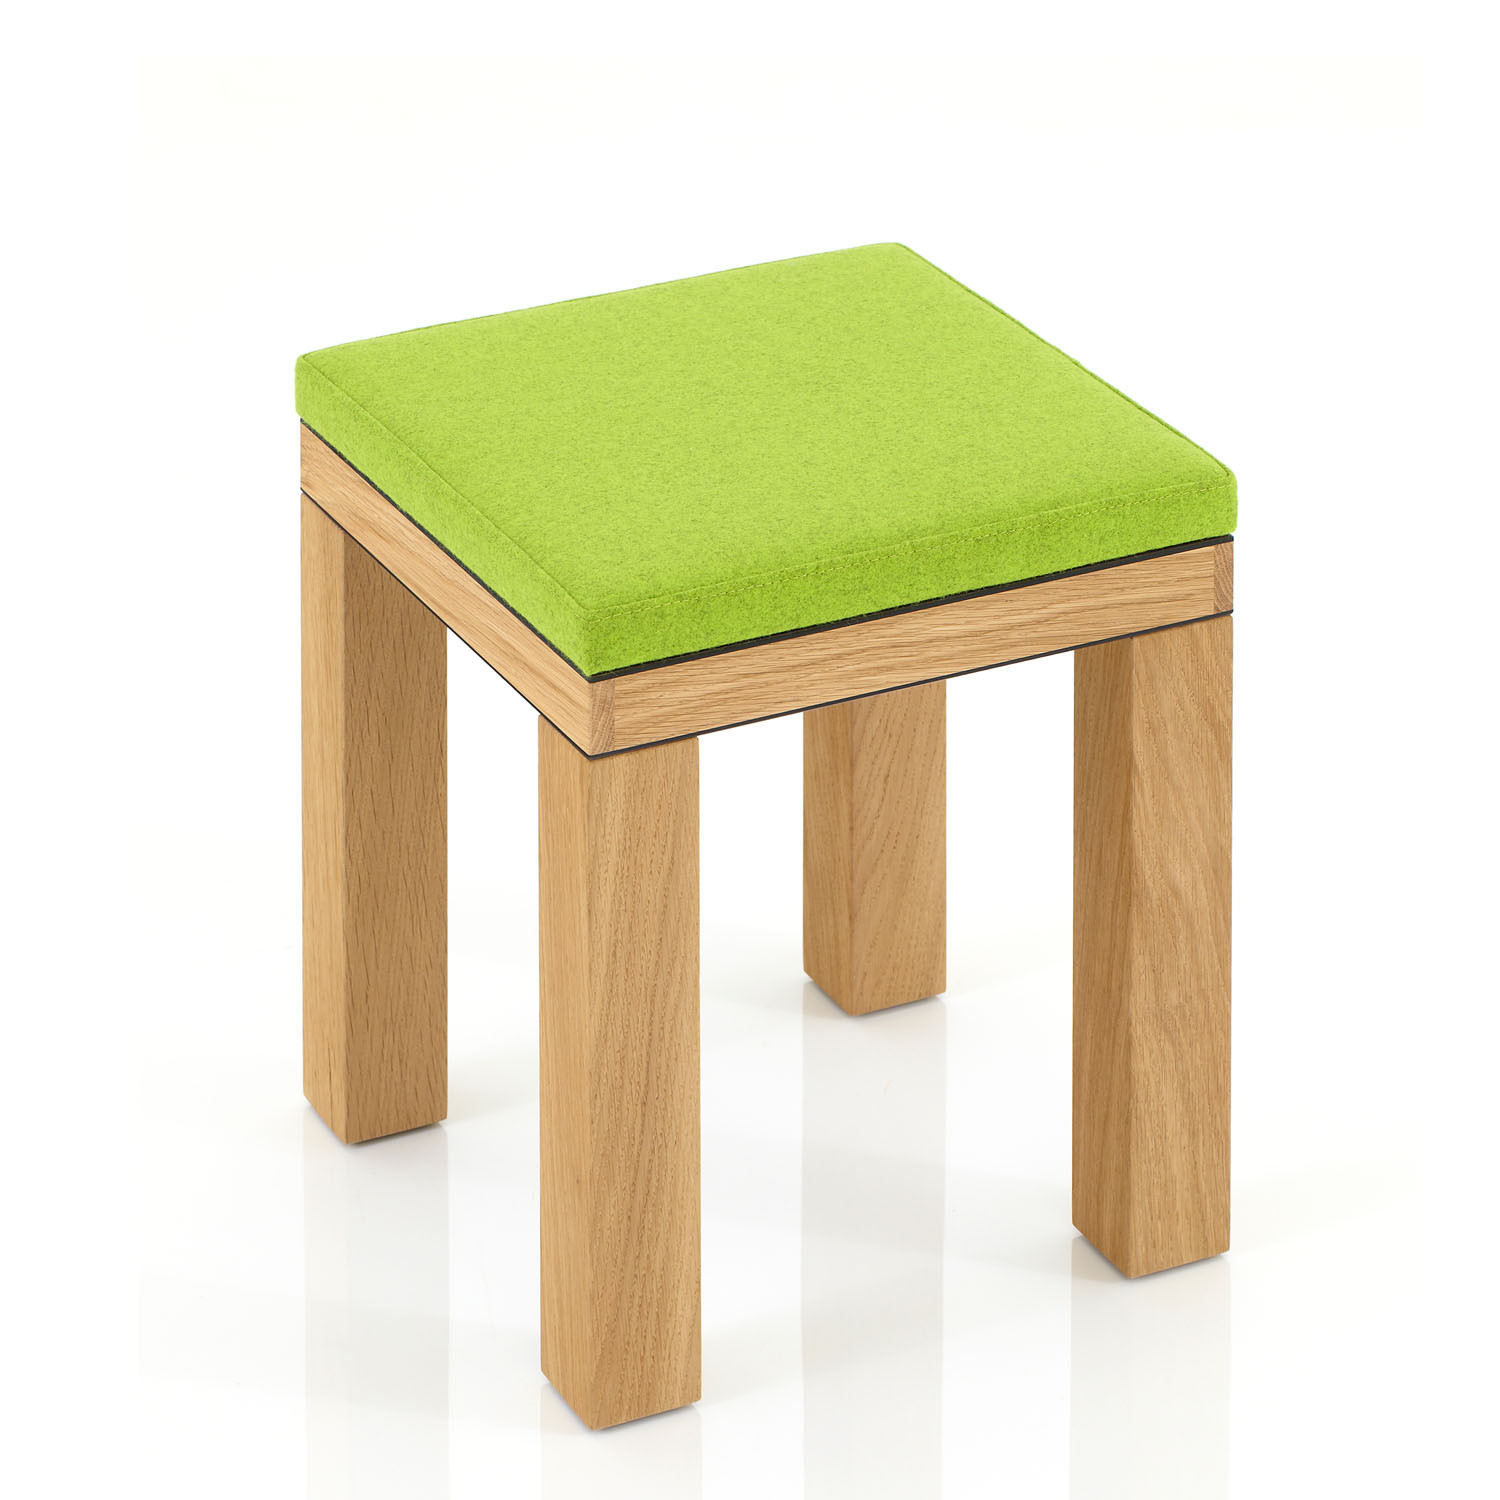 Bosa Tables and Benches by James Burleigh